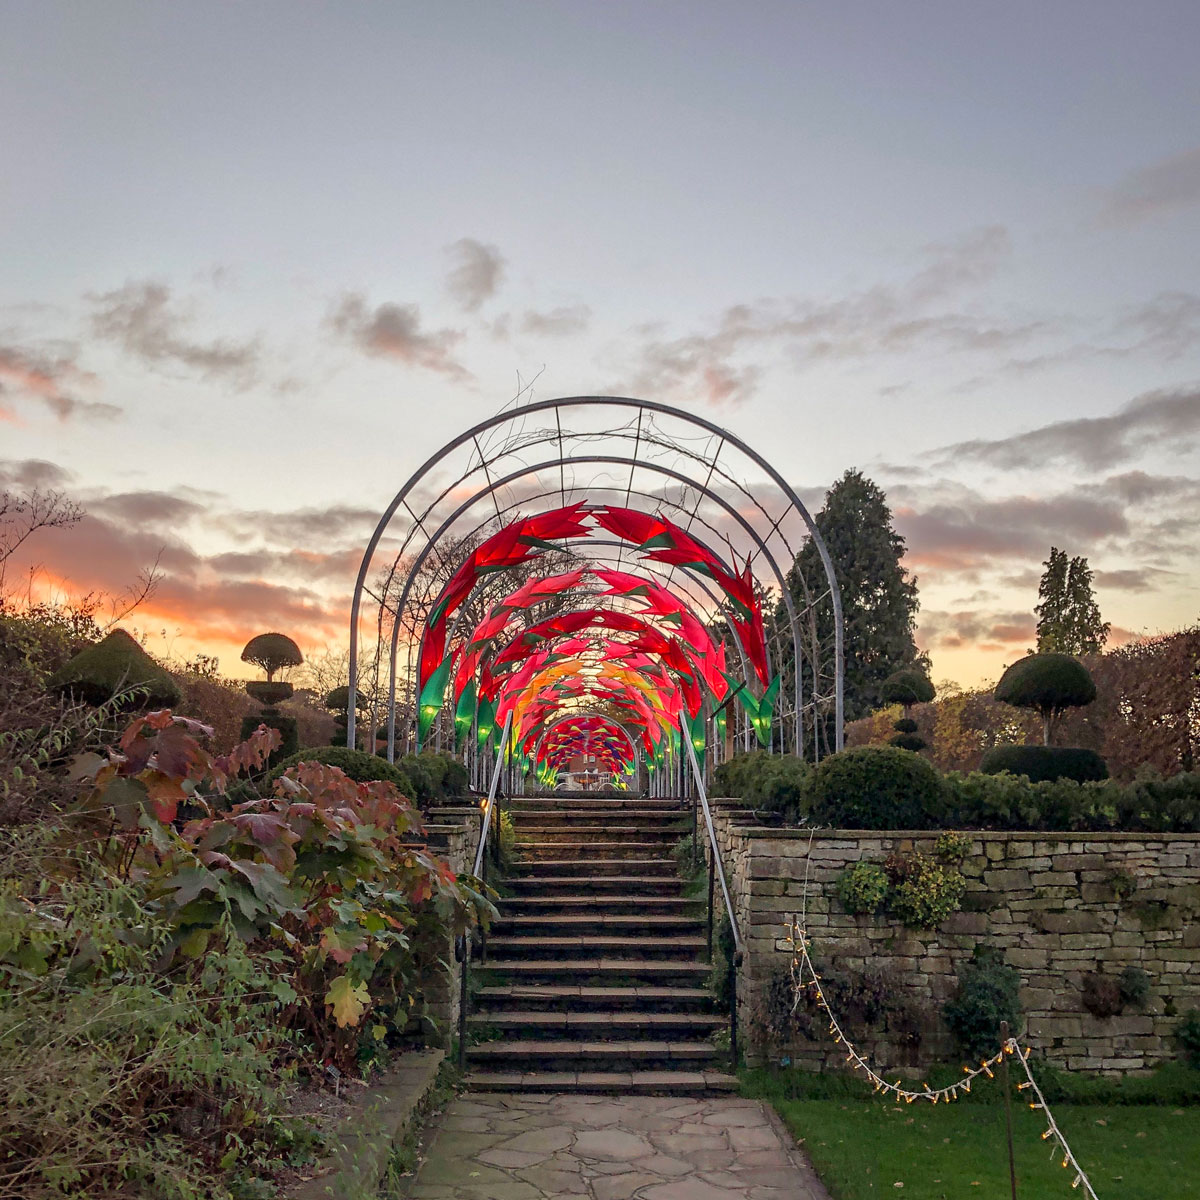 RHS Wisley Glow 2018 at sunset. Royal Horticultural Society. Wisteria Walk